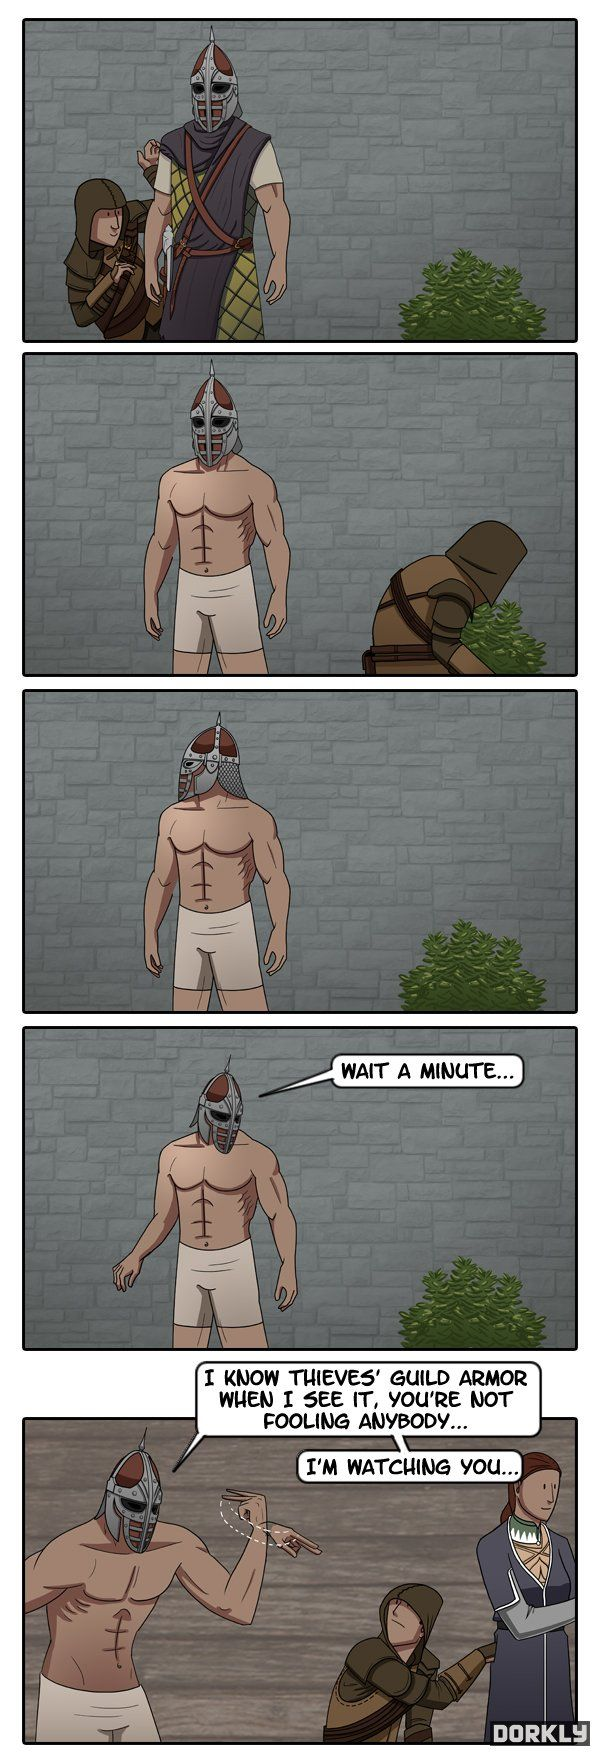 To Catch a Skyrim Thief - my character would've just taken everything and they don't even turn around